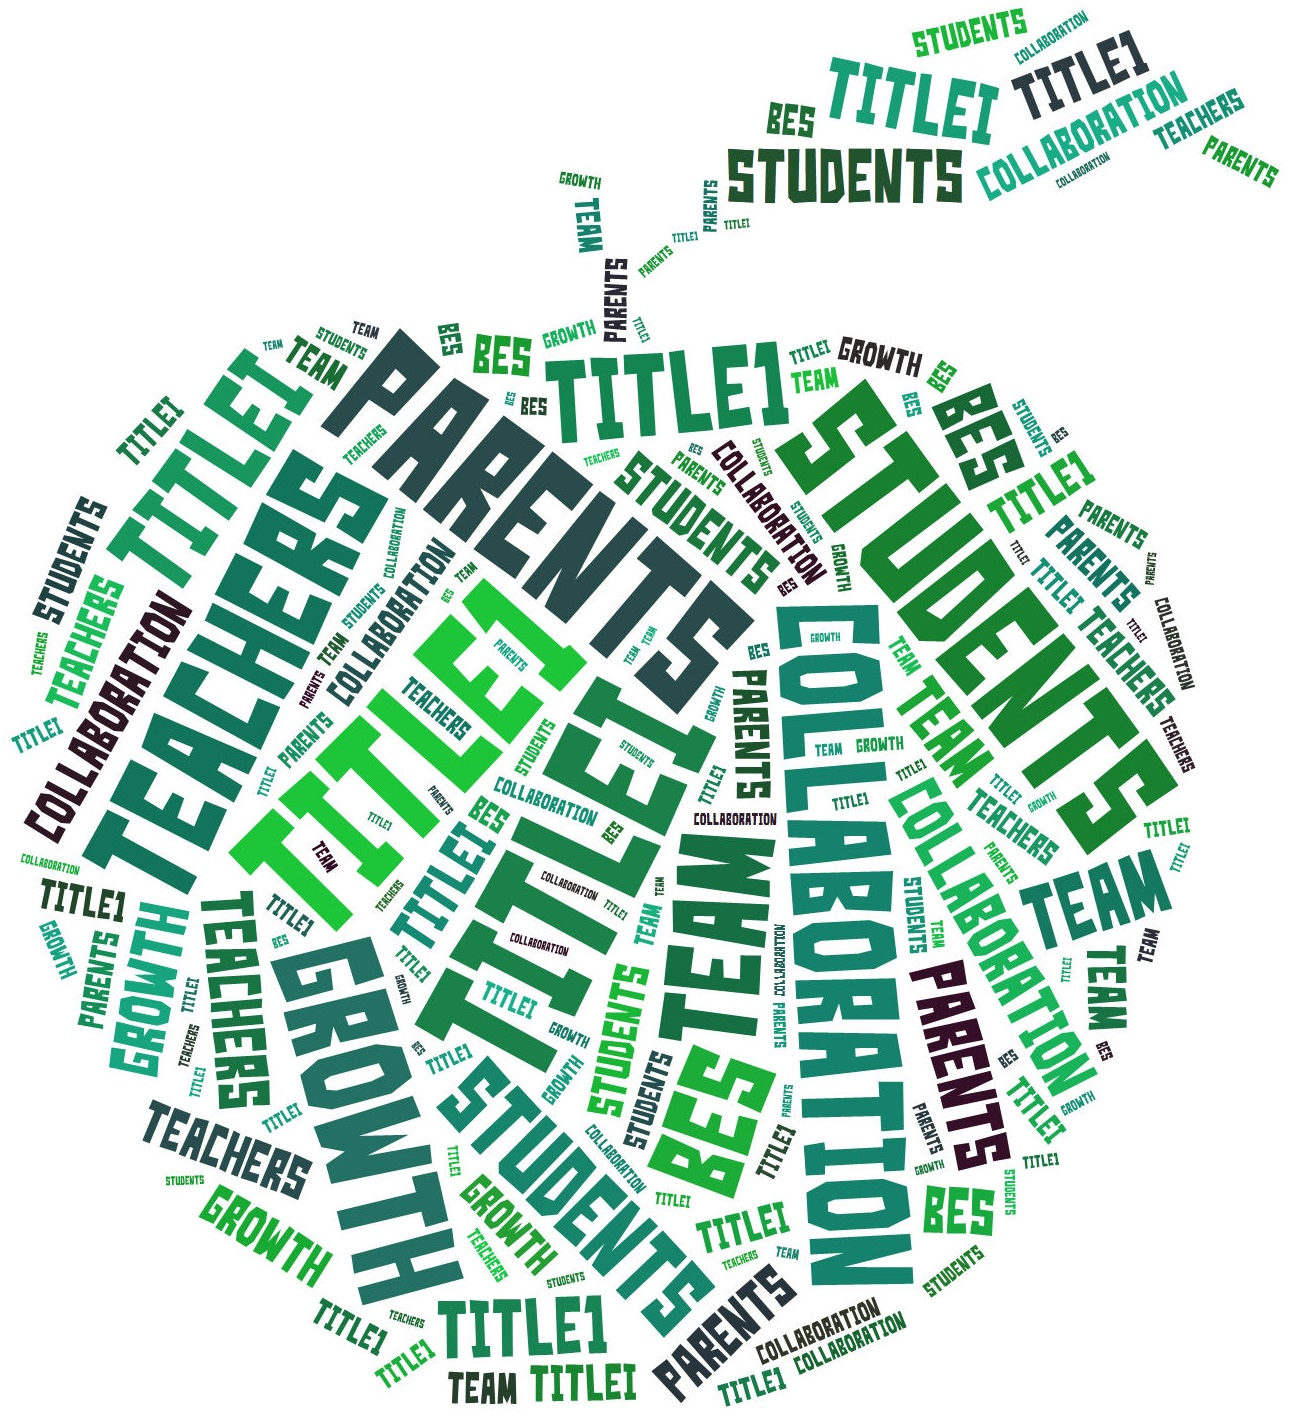 Word Cloud in the shape of an apple